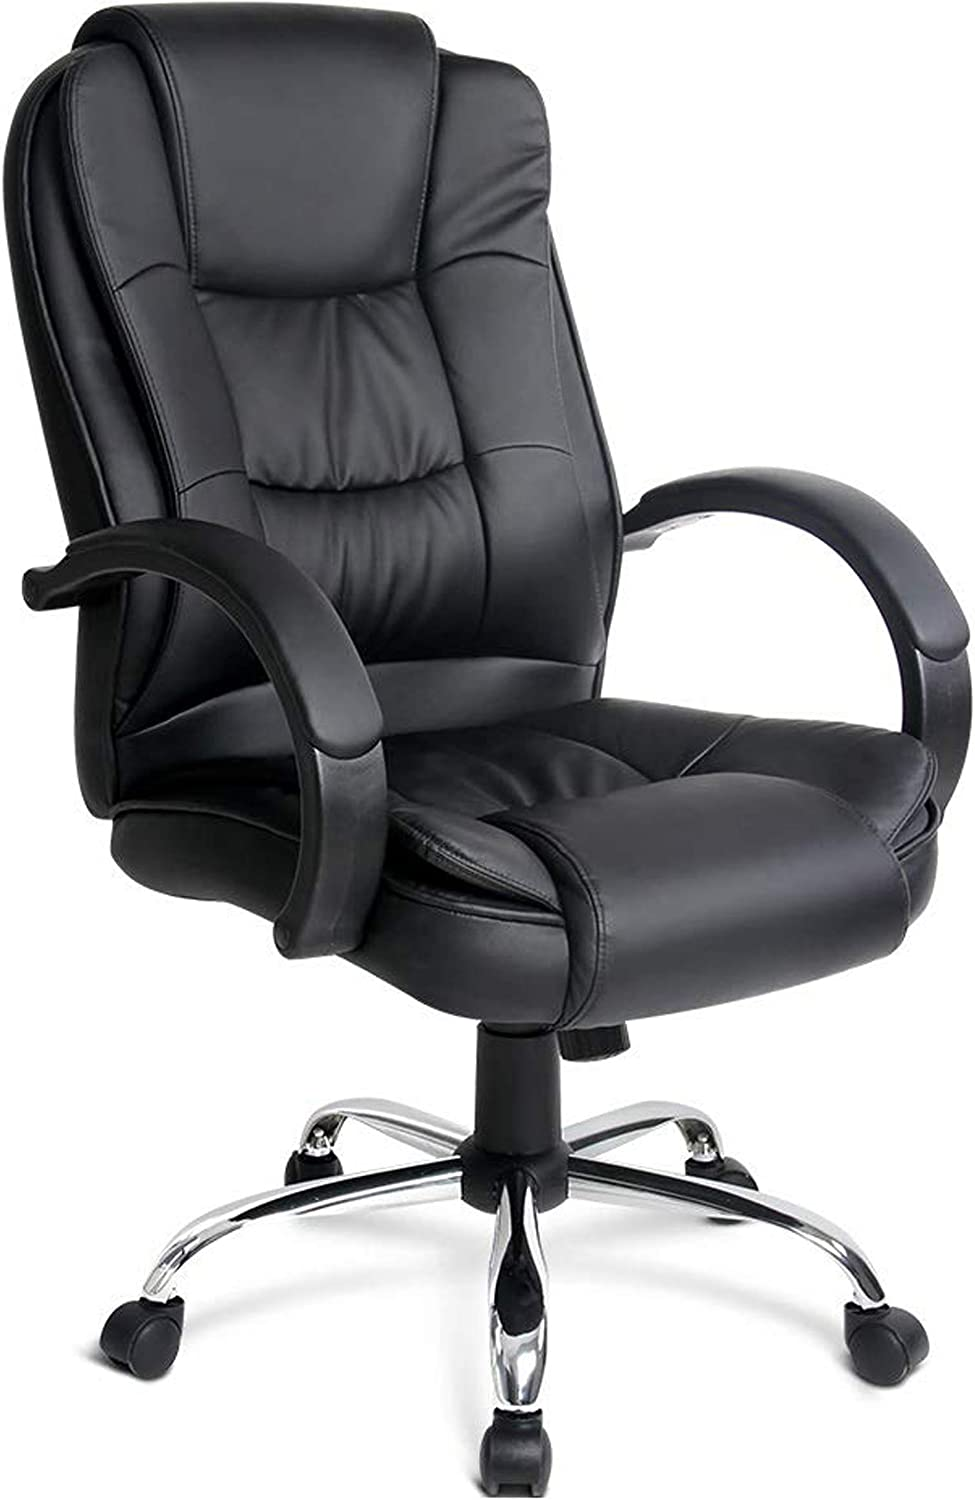 Halter Executive High Back Reclining PU Leather Office Chair; Integrated Headrest Thick Padded Seat Cushion Nylon Padded Armrest; Smooth-Glide Caster Wheels Durable Chrome Base; Black